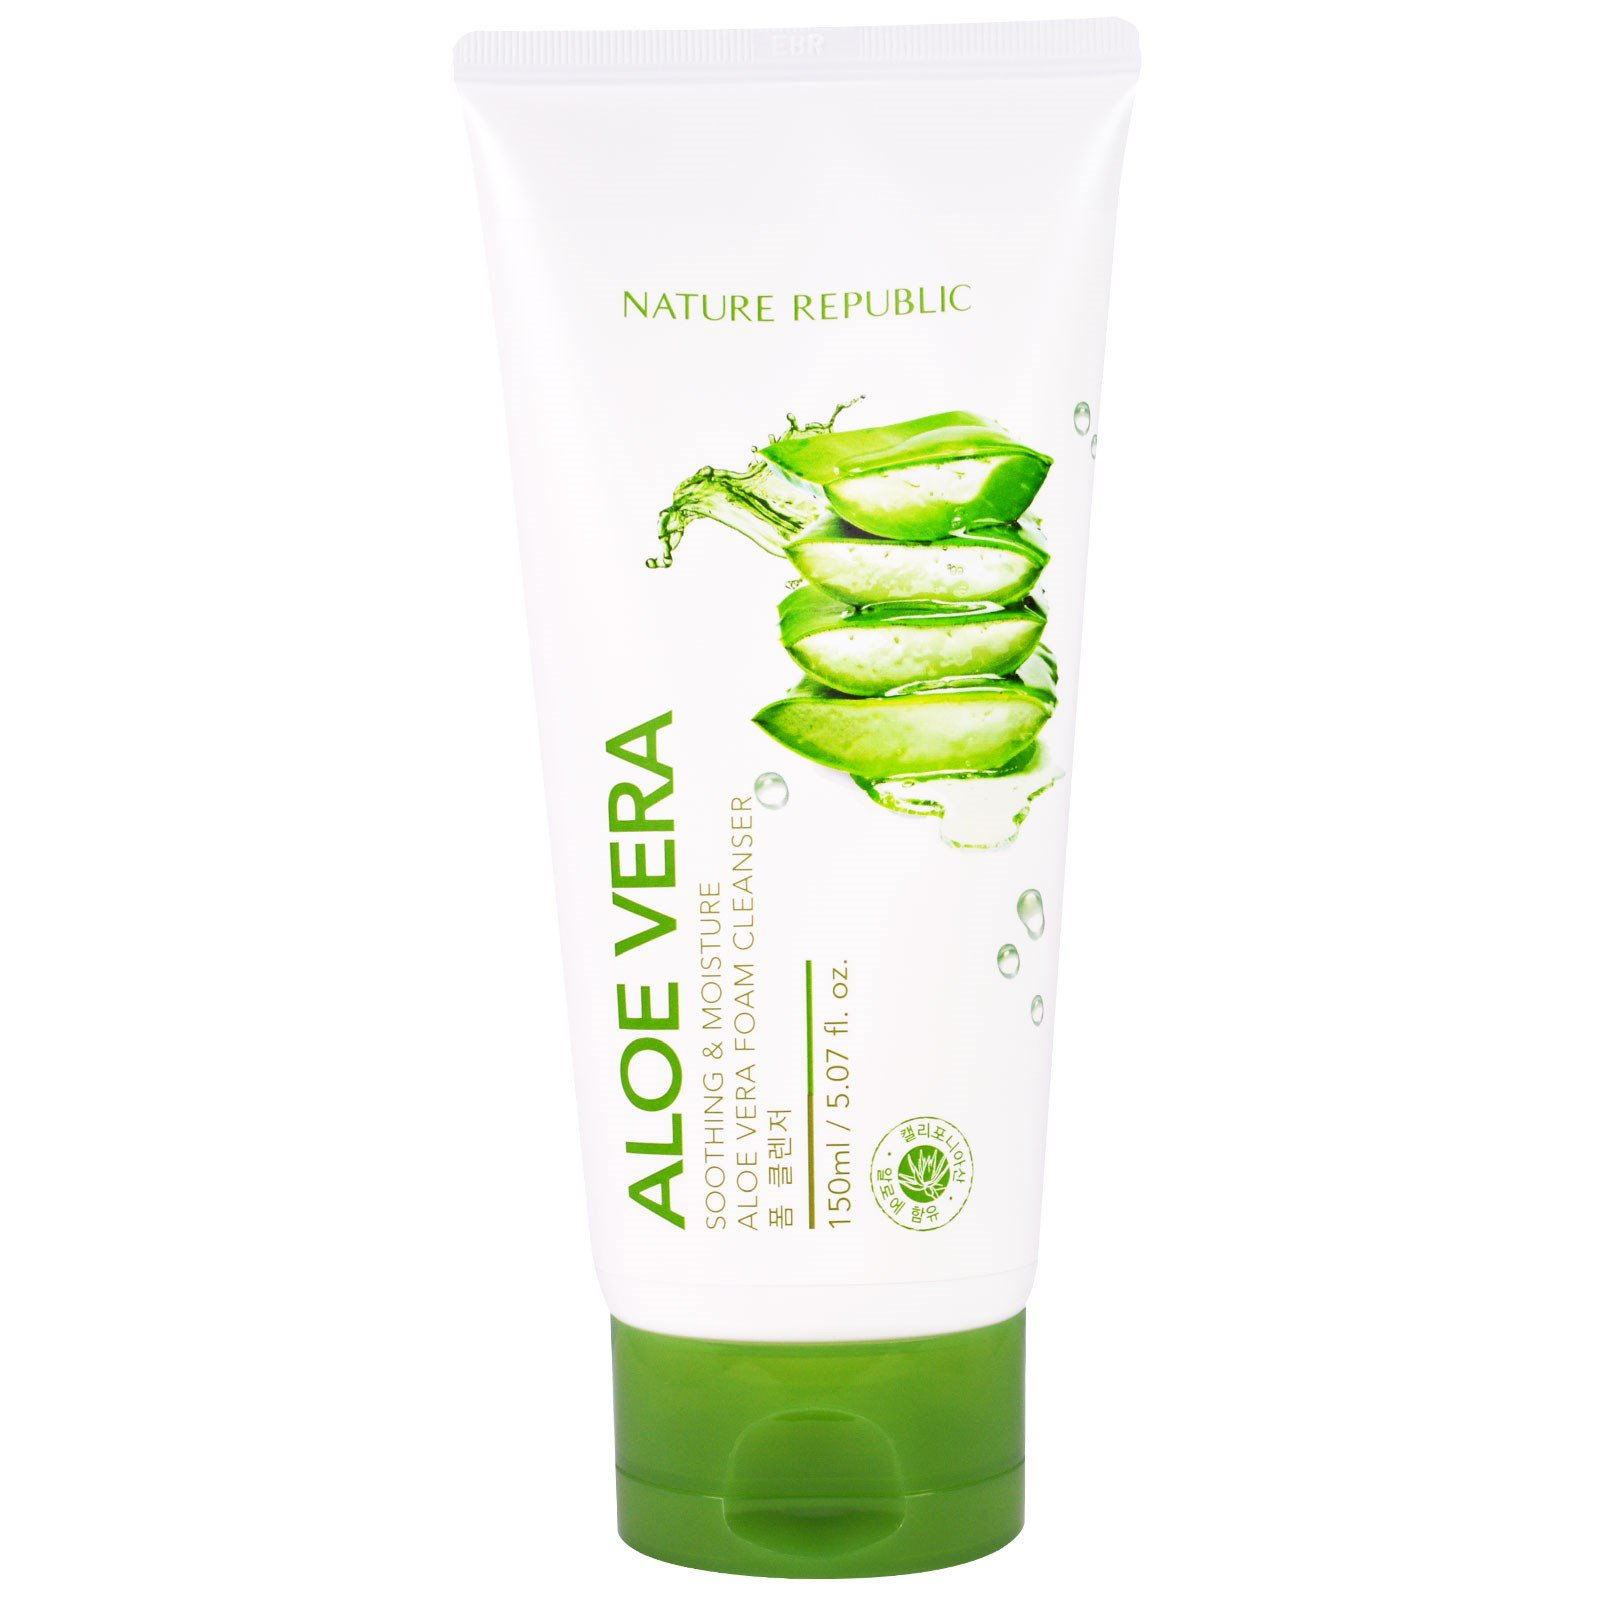 Nature Republic, Aloe Vera, Soothing & Moisture Aloe Vera Foam Cleanser, 5.07 fl oz (150 ml) (Discontinued Item)